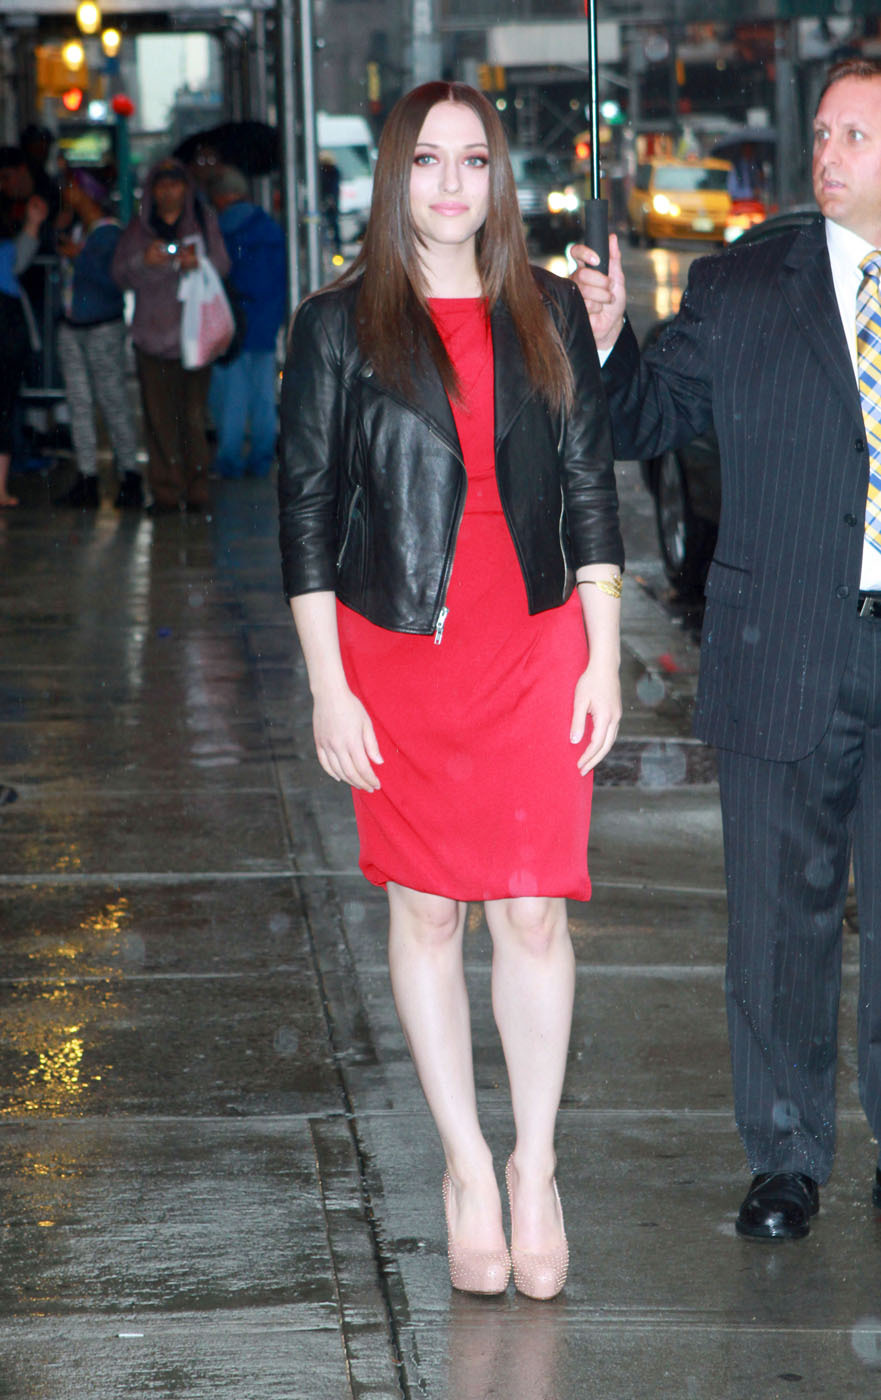 Kat Dennings at The Late Show in NYC, October 2nd